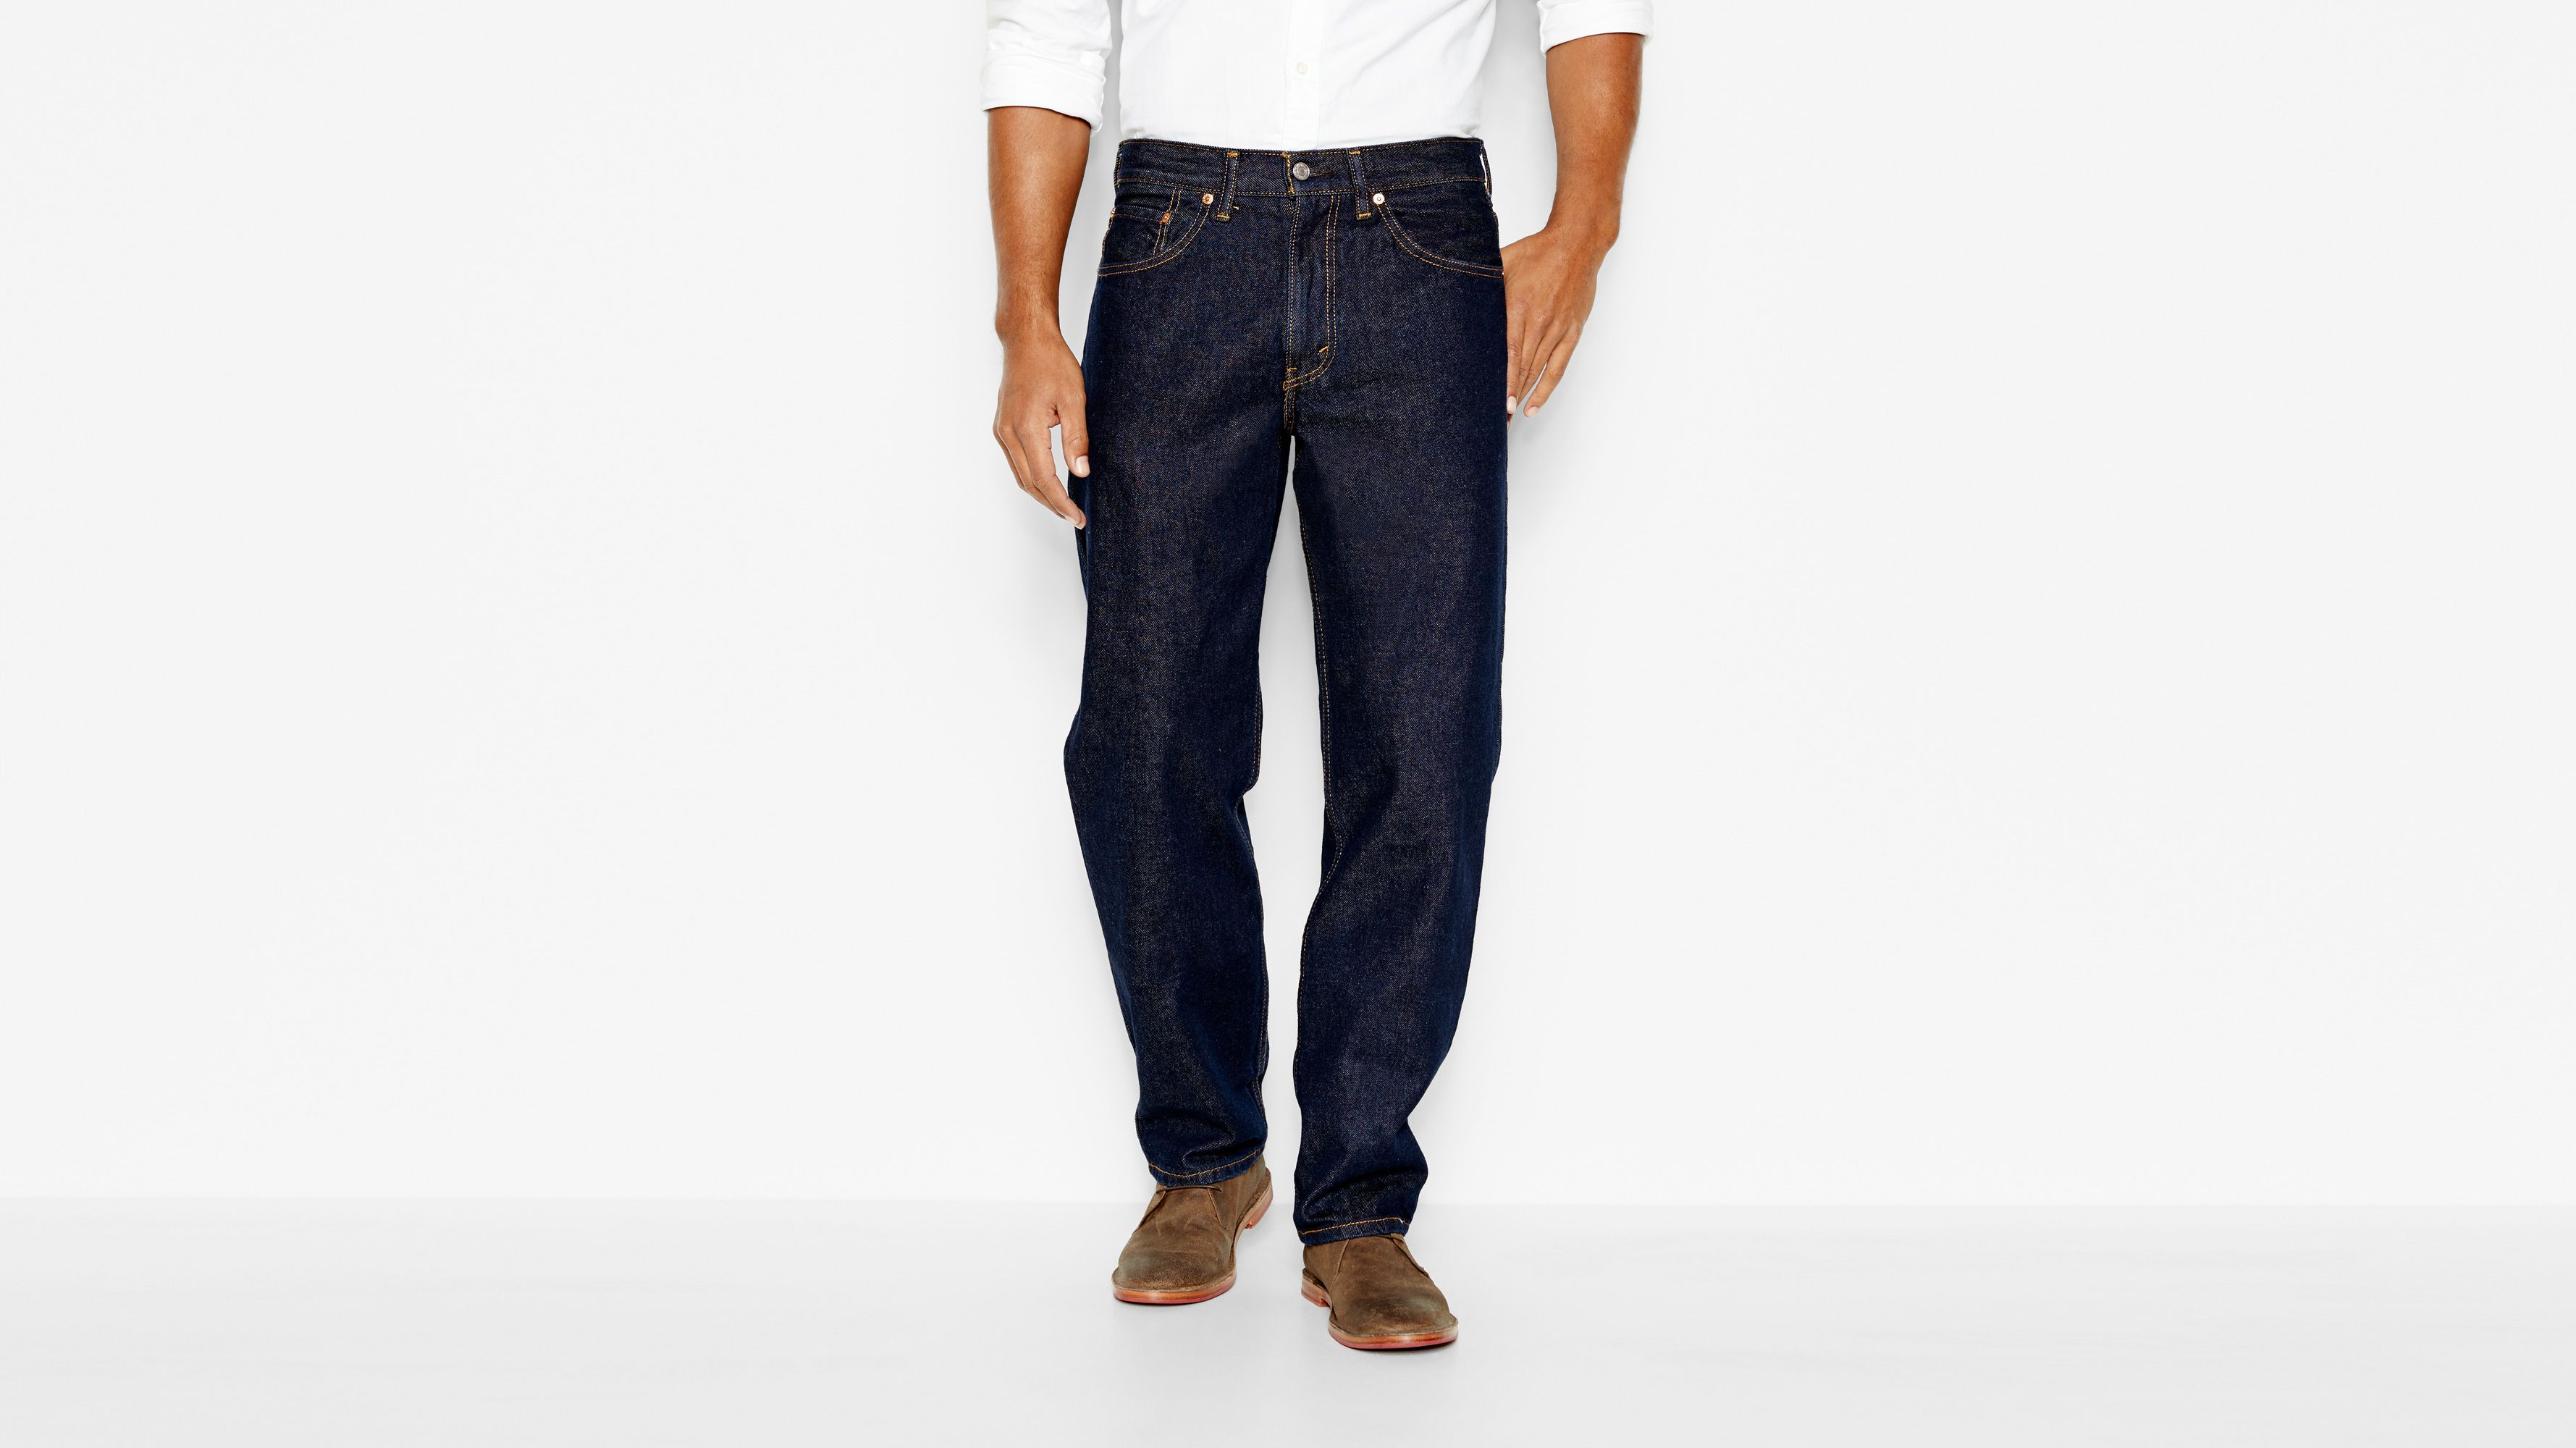 550™ Relaxed Fit Jeans - Rinse